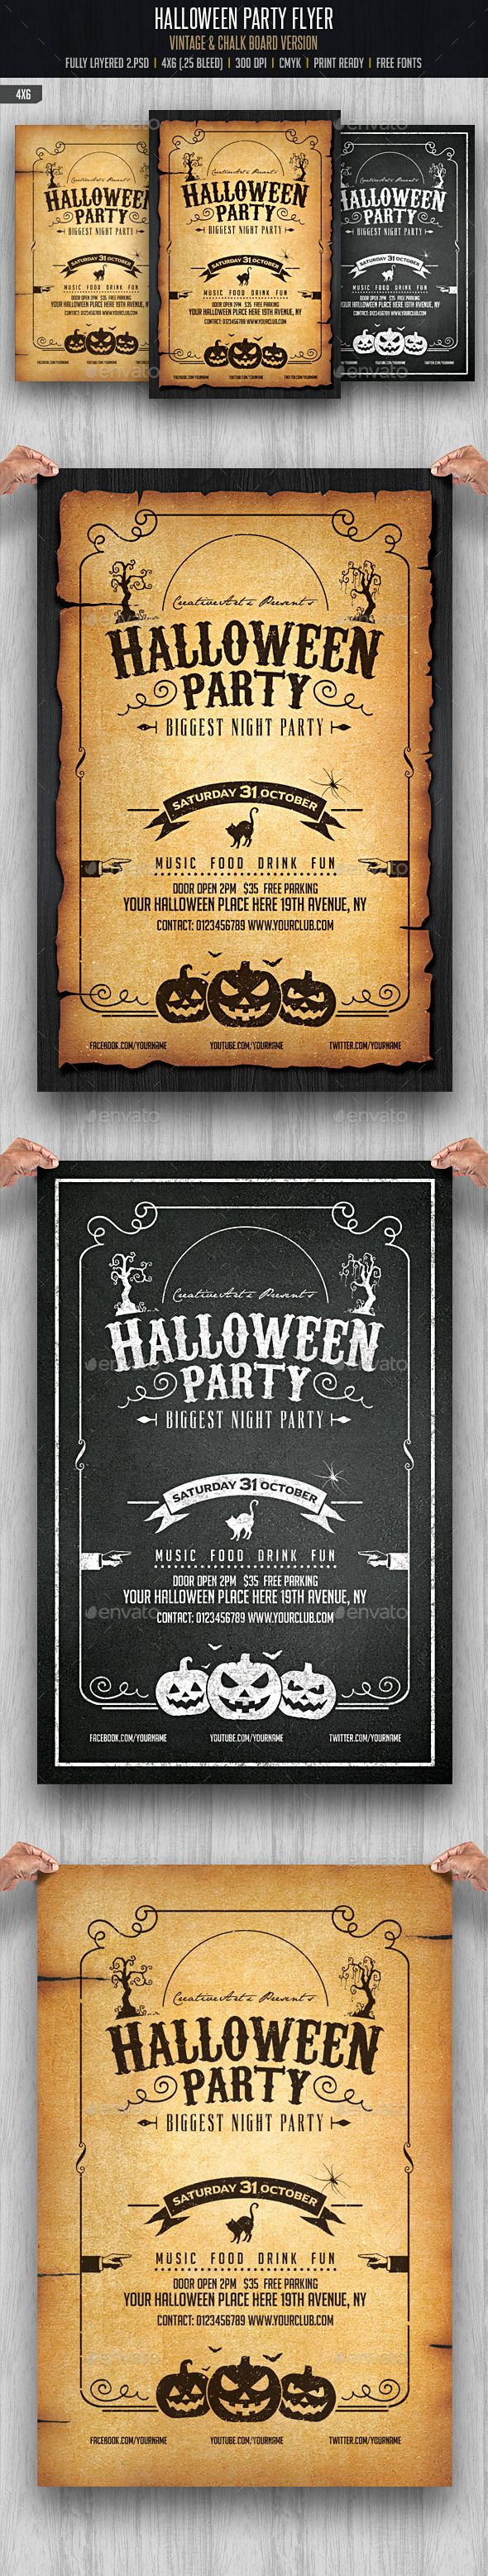 Halloween Party Flyer Tempalte #design #printtemplate Download: http://graphicriver.net/item/halloween-party-flyer-template/12873806?ref=ksioks